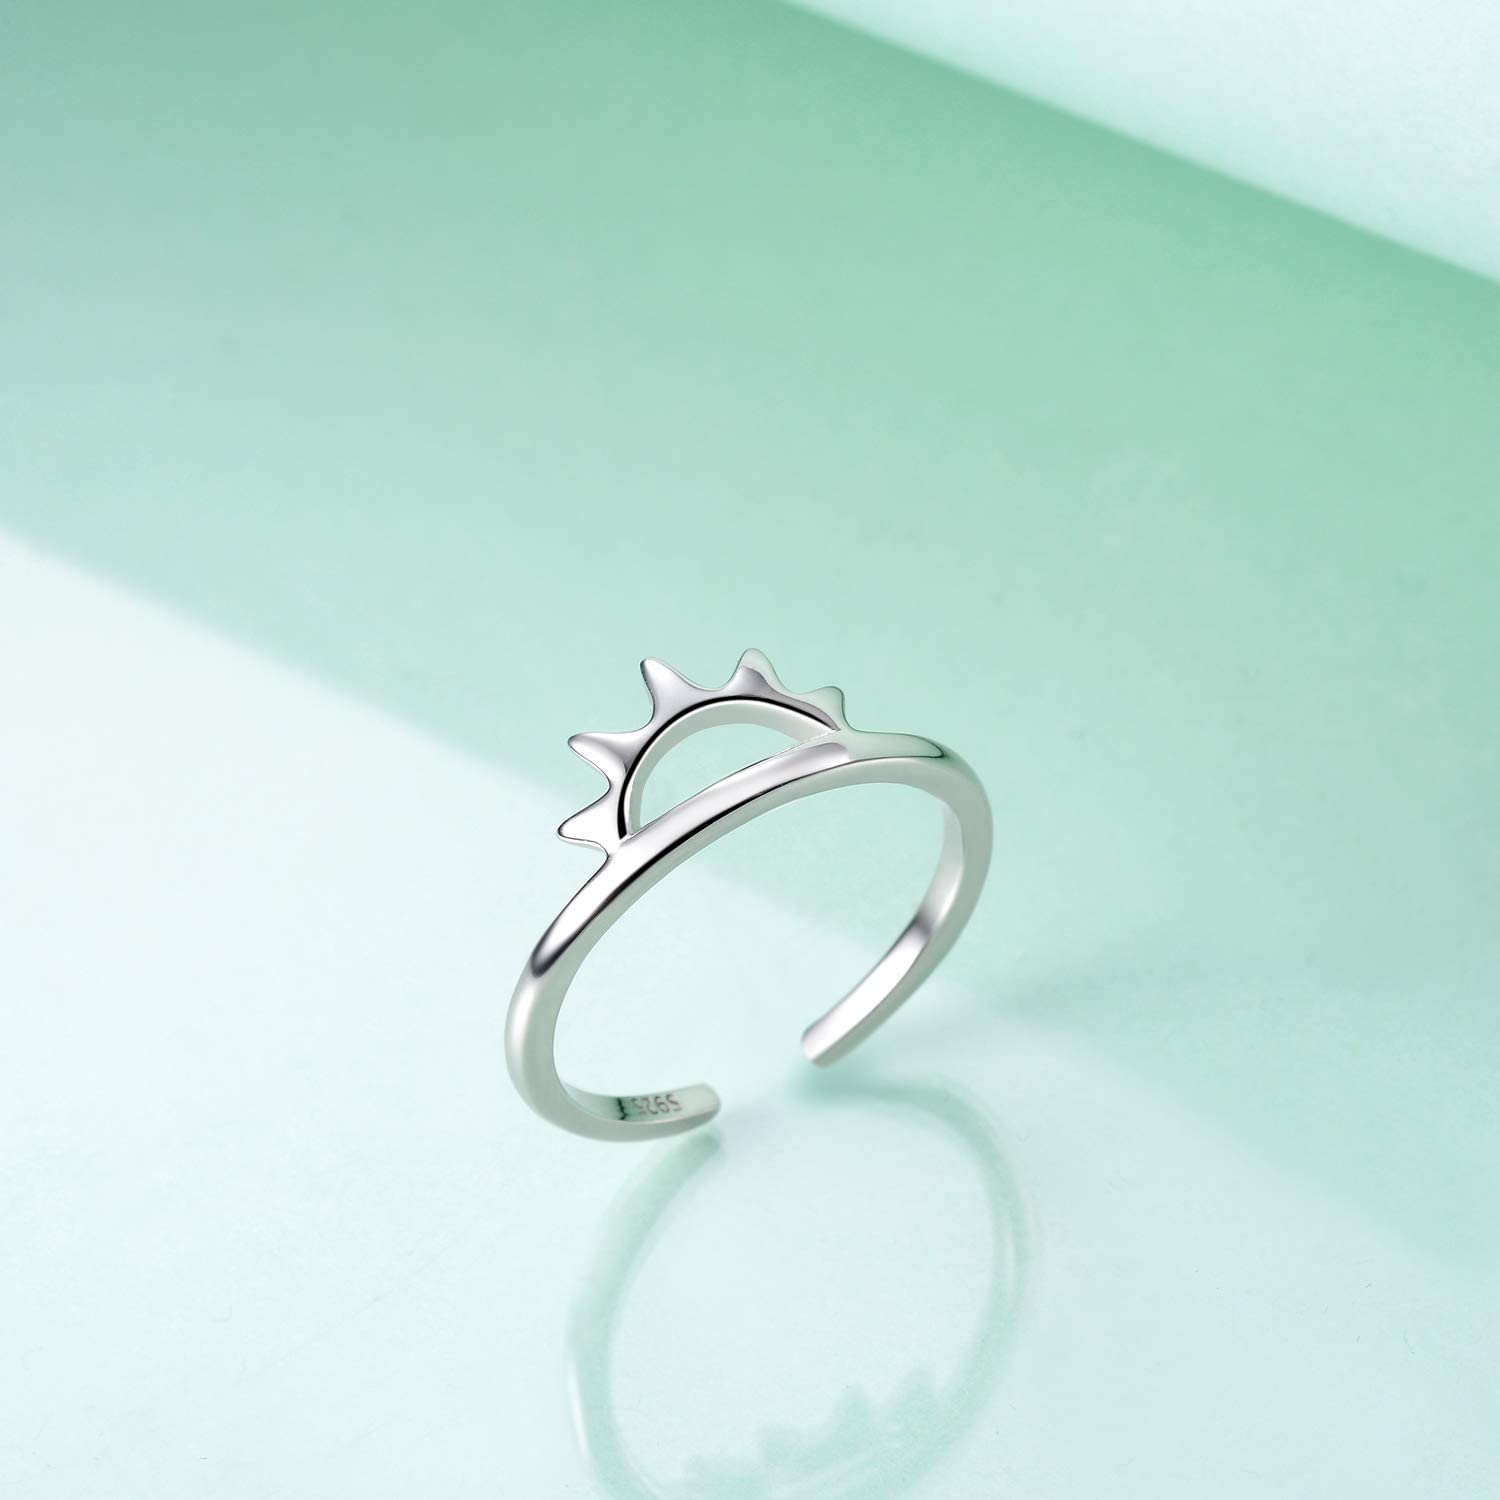 YFN 925 Sterling Silver Simple Ring Thin Band Adjustable Open Rings